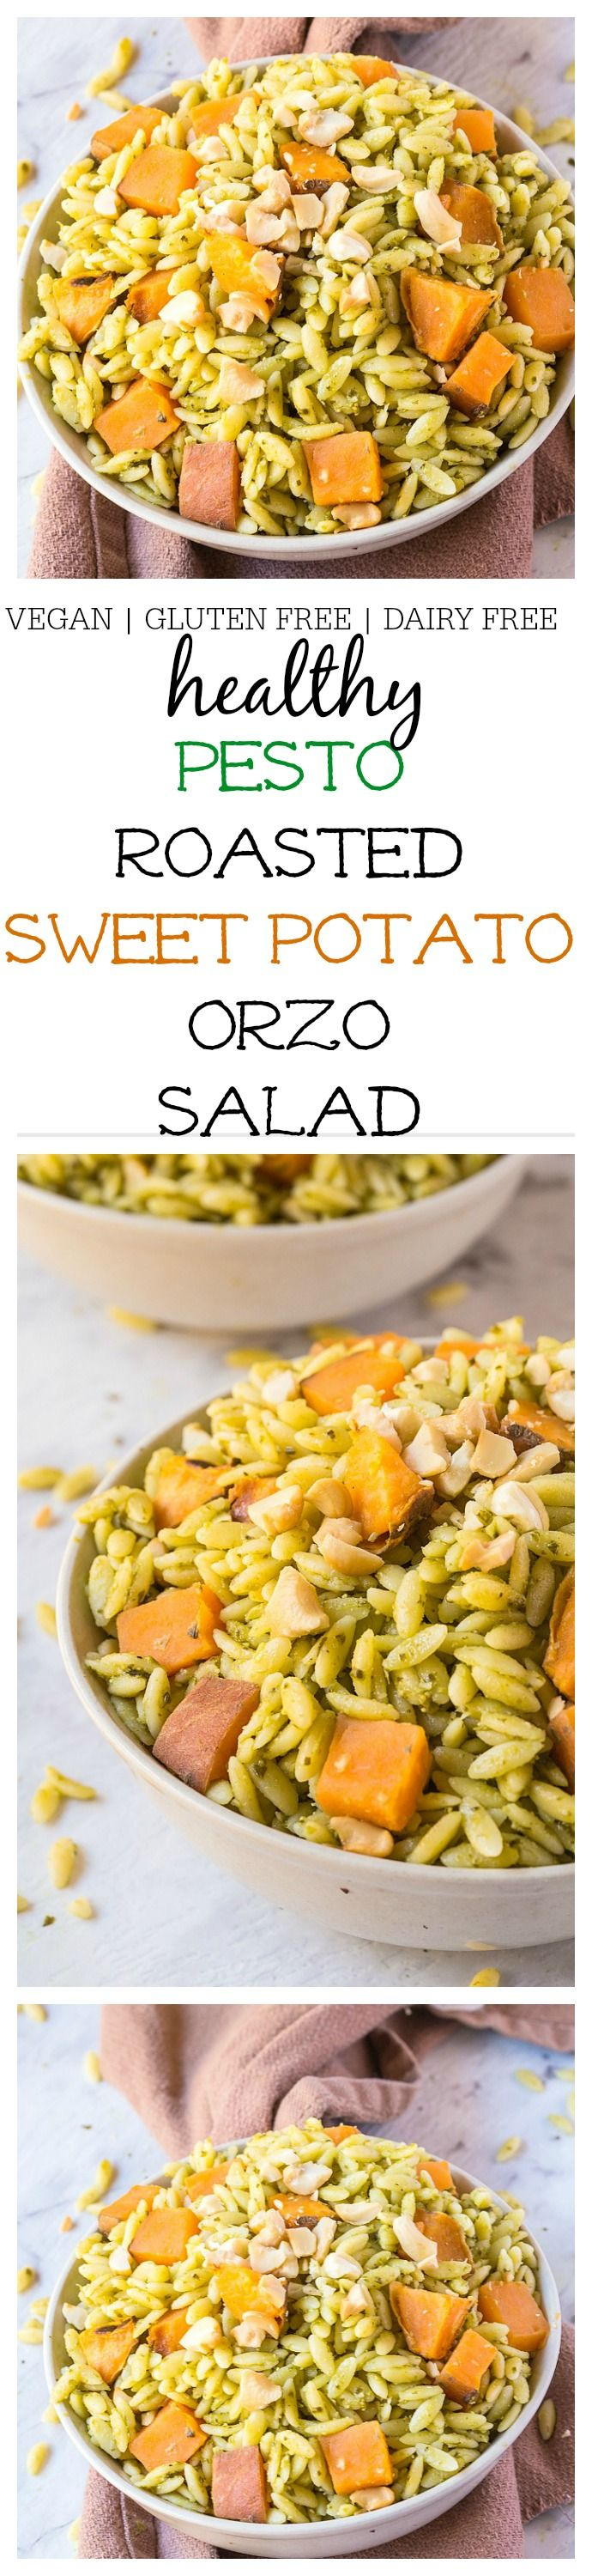 Pesto + Marinated Sweet Potato Orzo Salad- Take your picnics, barbecues and grilling sessions up a notch with this fancy yet super simple side dish! Vegan, Dairy Free and gluten free @thebigmansworld - thebigmansworld.com